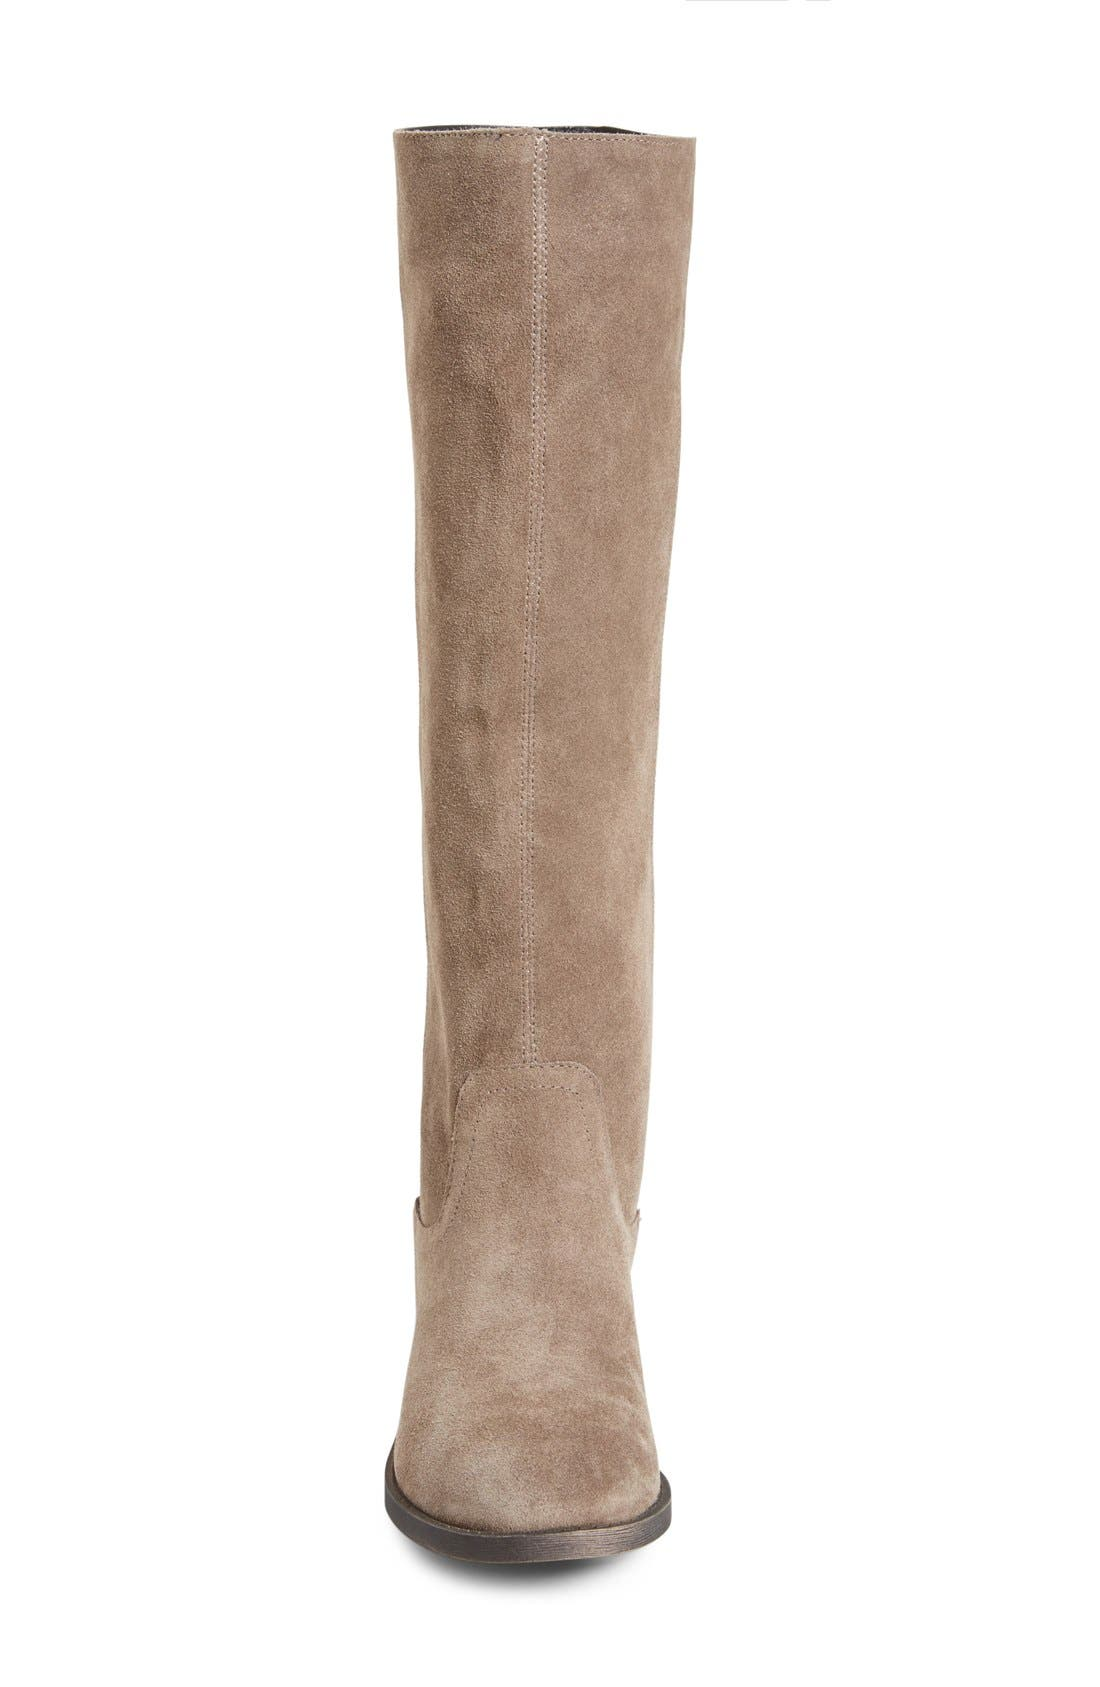 Alternate Image 2  - Sole Society 'Kellini' Suede Knee High Boot (Women)